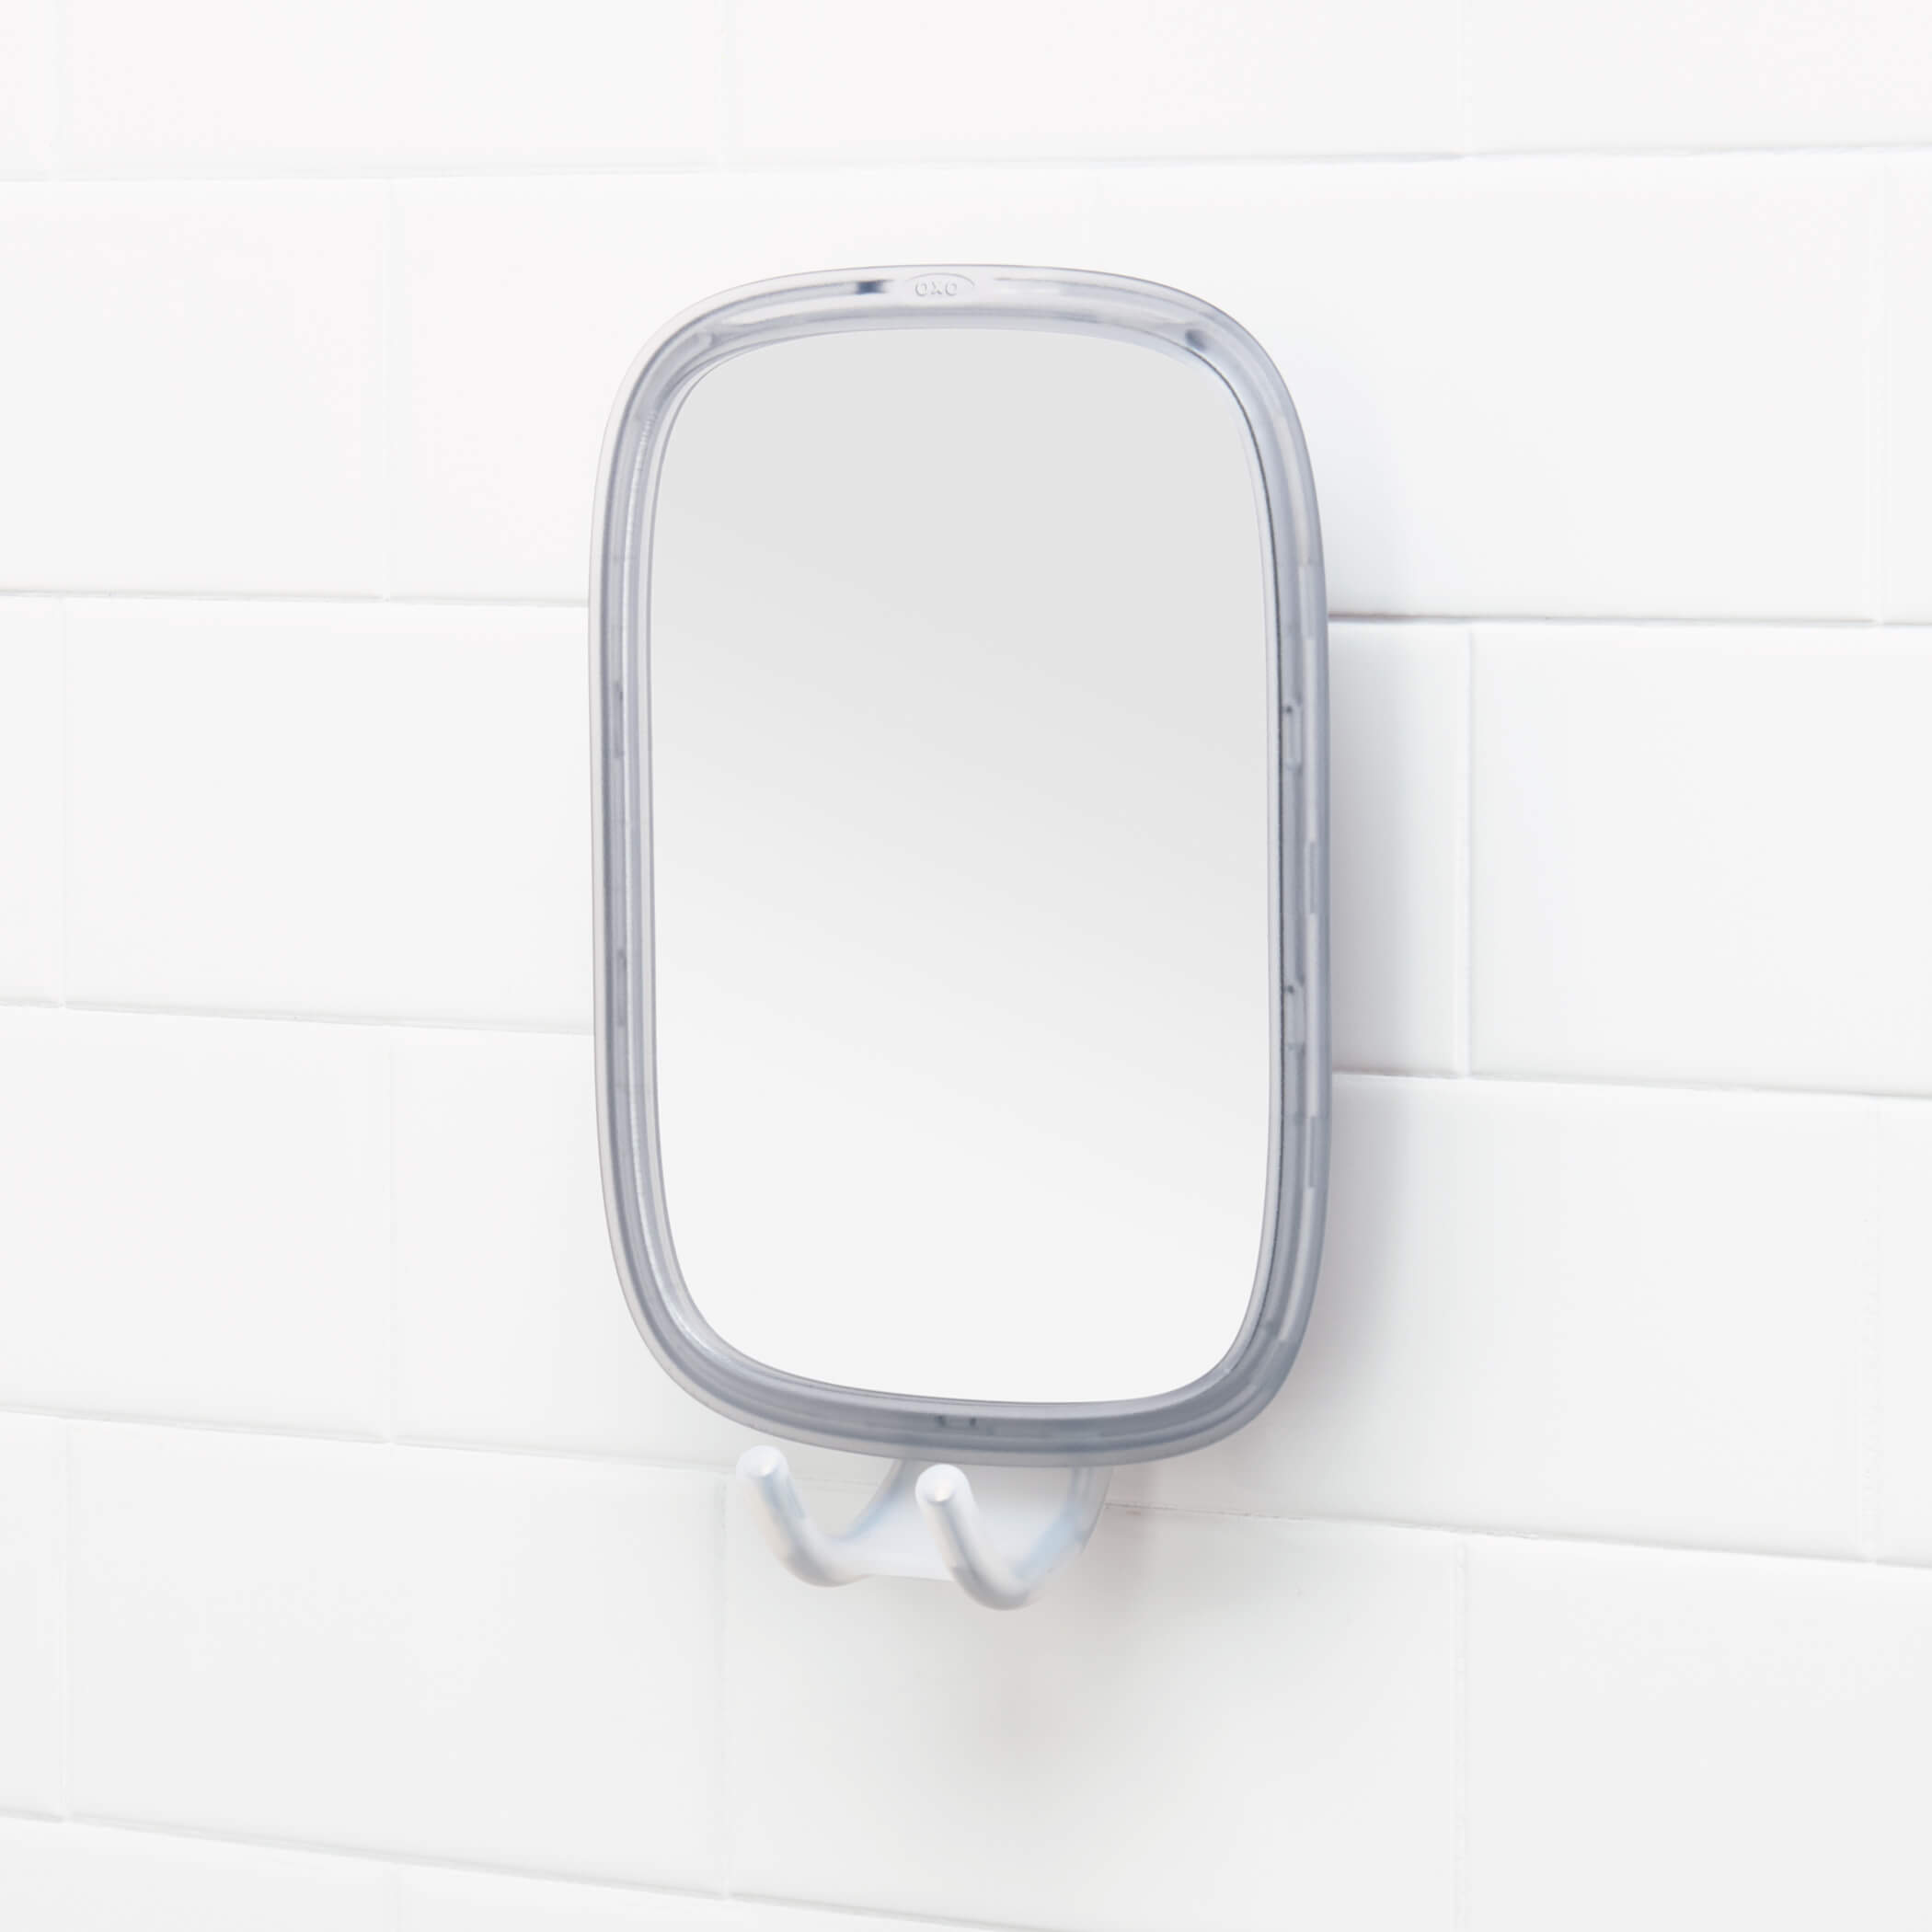 StrongHold™ Suction Fogless Mirror